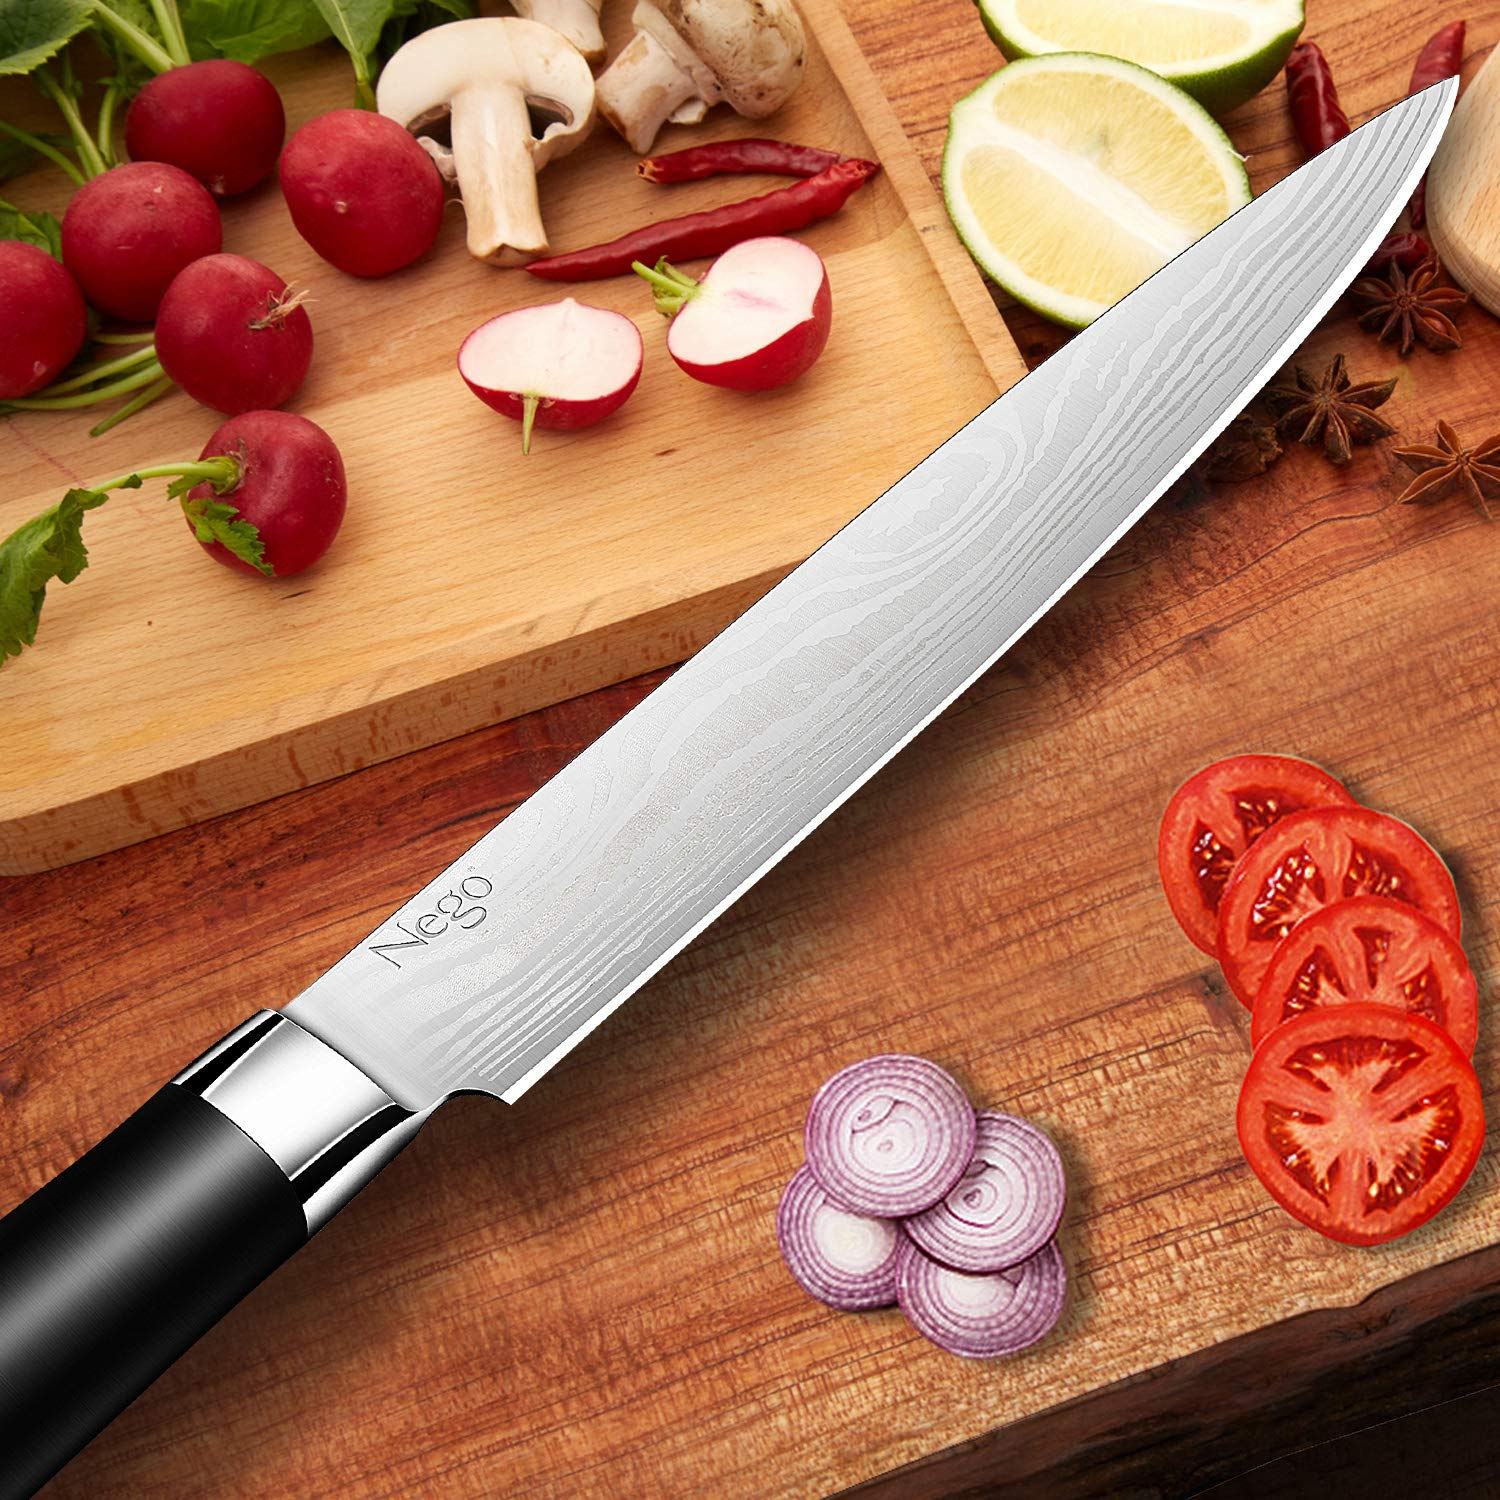 Sashimi Knife - Kitchen Knife - 8.5 Inch Chef's Knife - German High Carbon Stainless Steel With Ergonomic Handle Protective Finger Guard - Cooking Knife Chef Knives Vegetable Cleavers by Nego (Image #3)